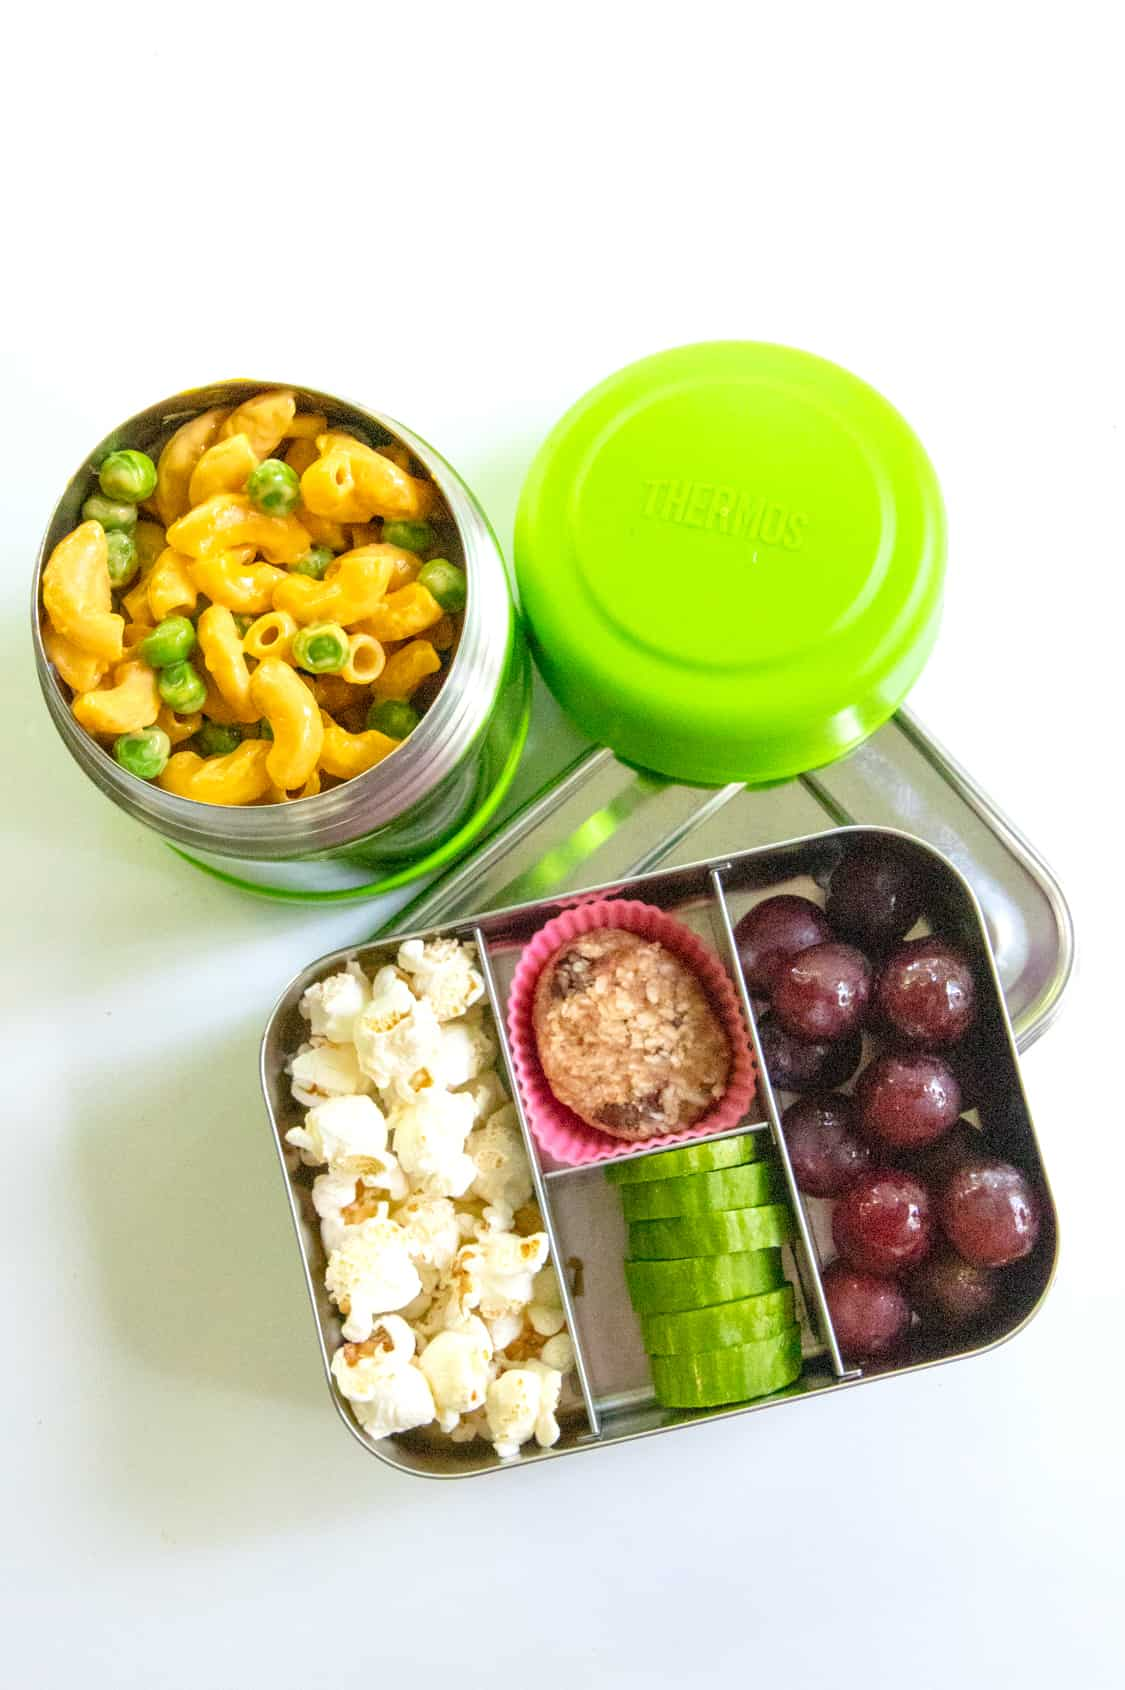 School lunch idea: Bento-style lunch box with popcorn, grapes, cucumber, and cookies next to a Thermos of mac and cheese.